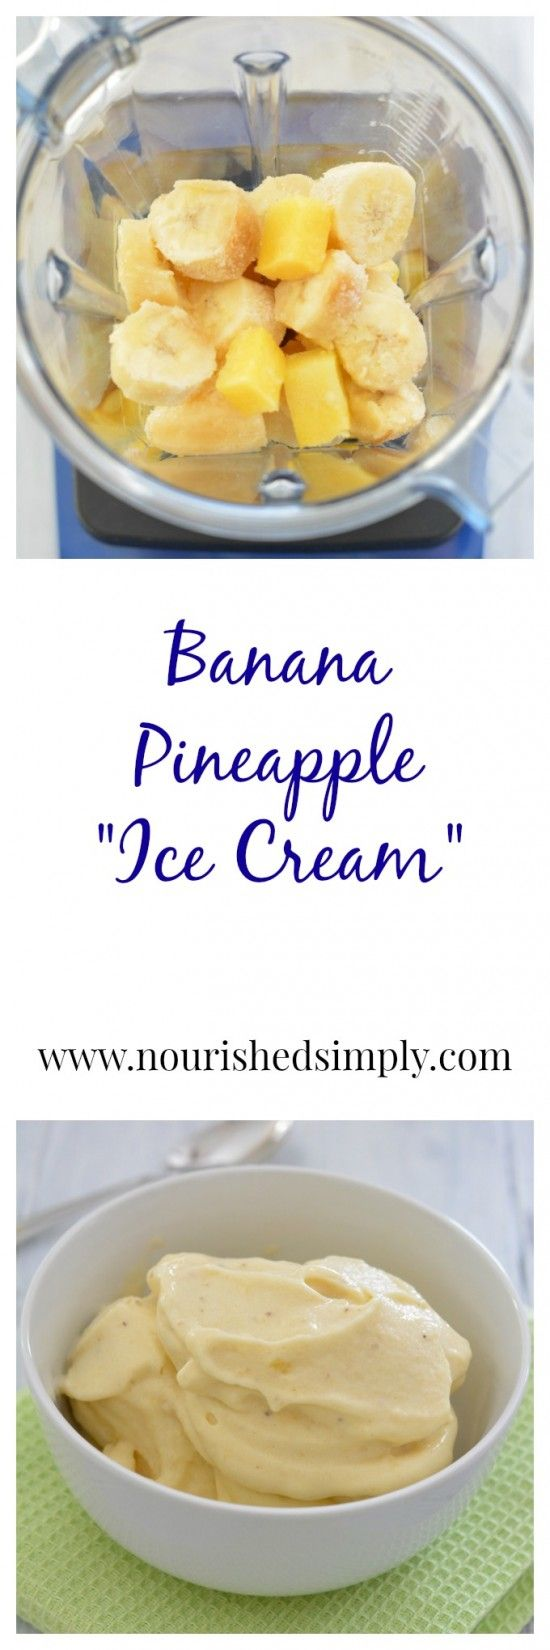 "Do want a healthier alternative to ice cream? Try 100% whole fruit ""ice cream"". This banana pineapple ice cream will satisfy your sweet tooth, but make you feel good inside!"